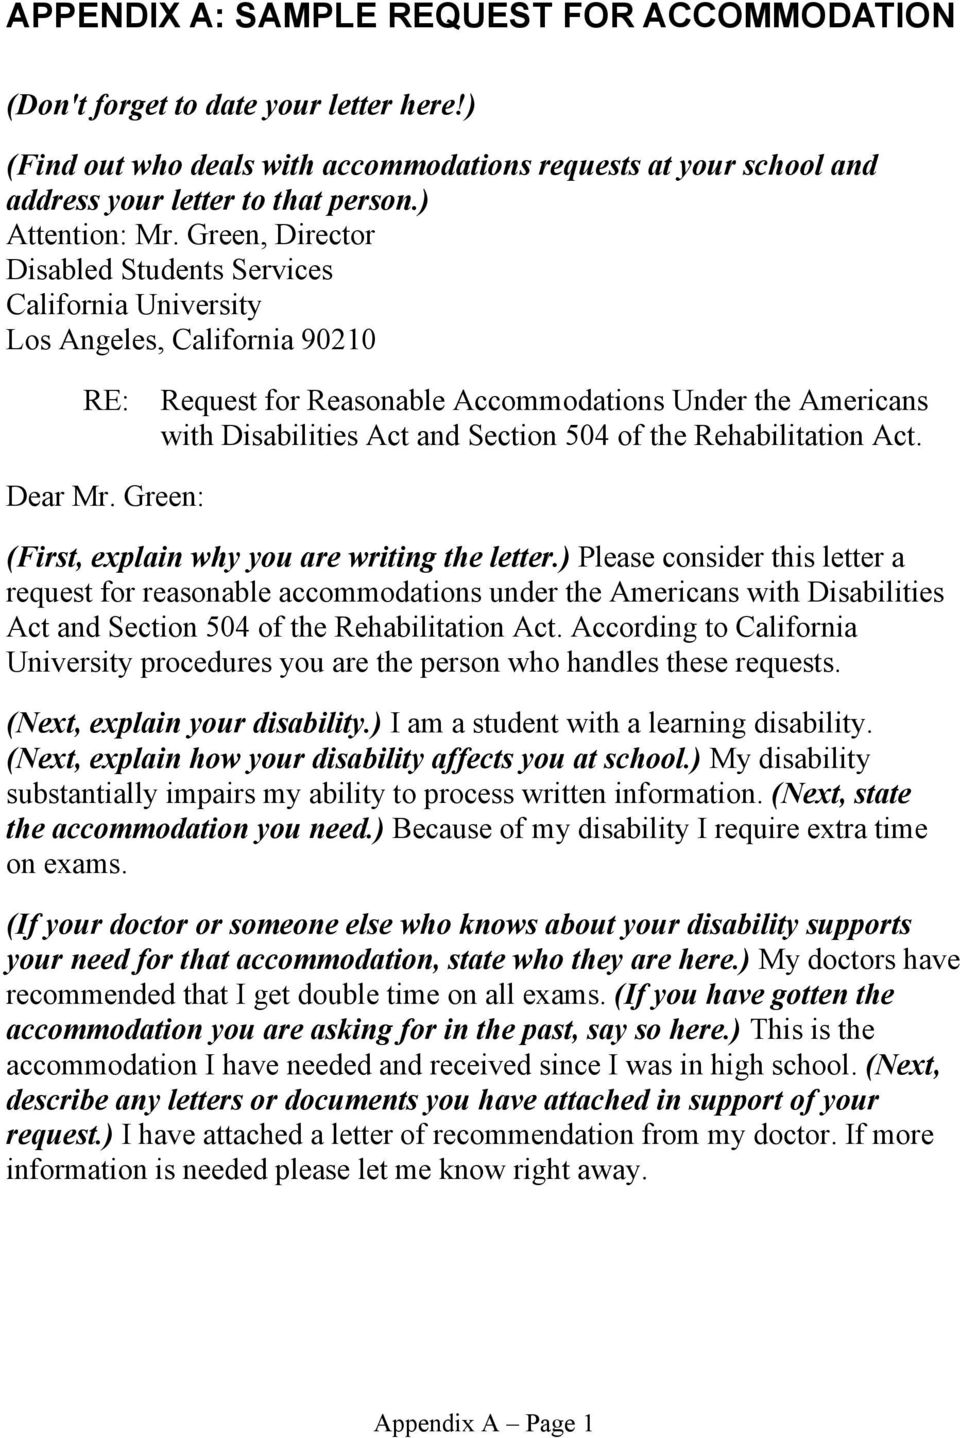 Green, Director Disabled Students Services California University Los Angeles, California 90210 RE: Request for Reasonable Accommodations Under the Americans with Disabilities Act and Section 504 of